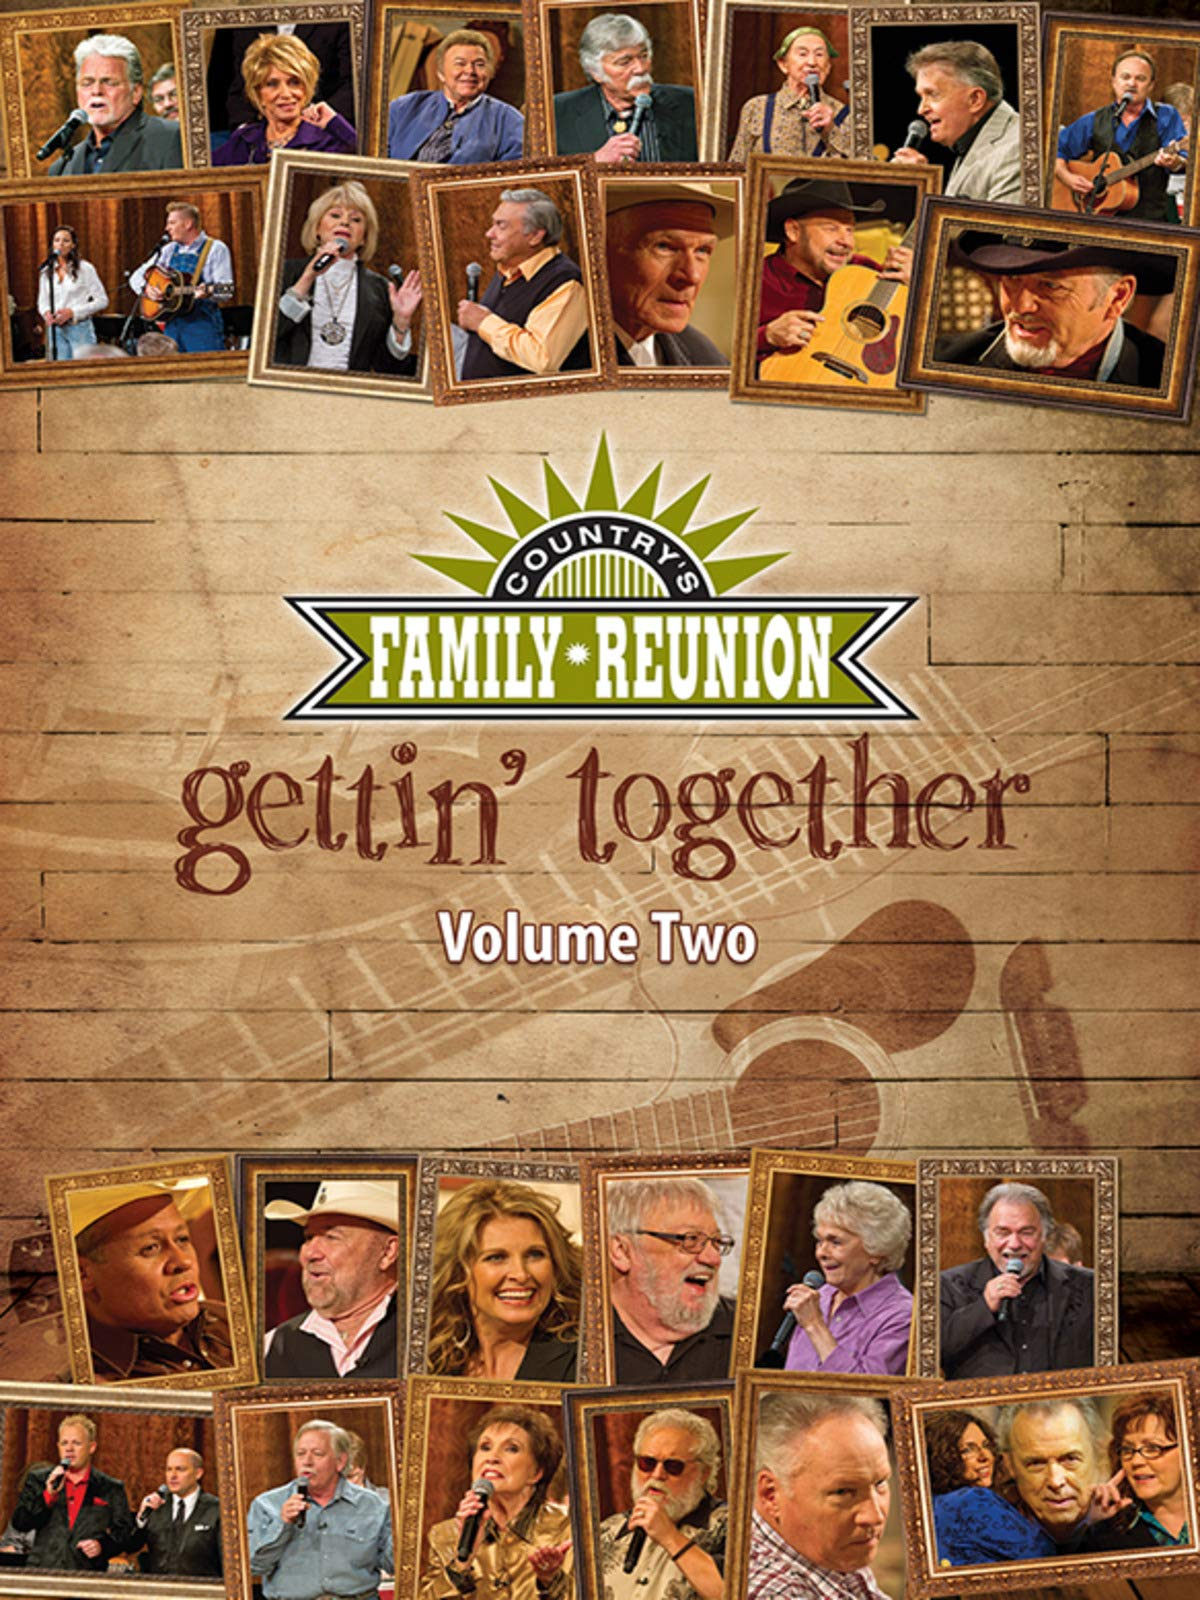 Country's Family Reunion - Gettin' Together: Volume Two